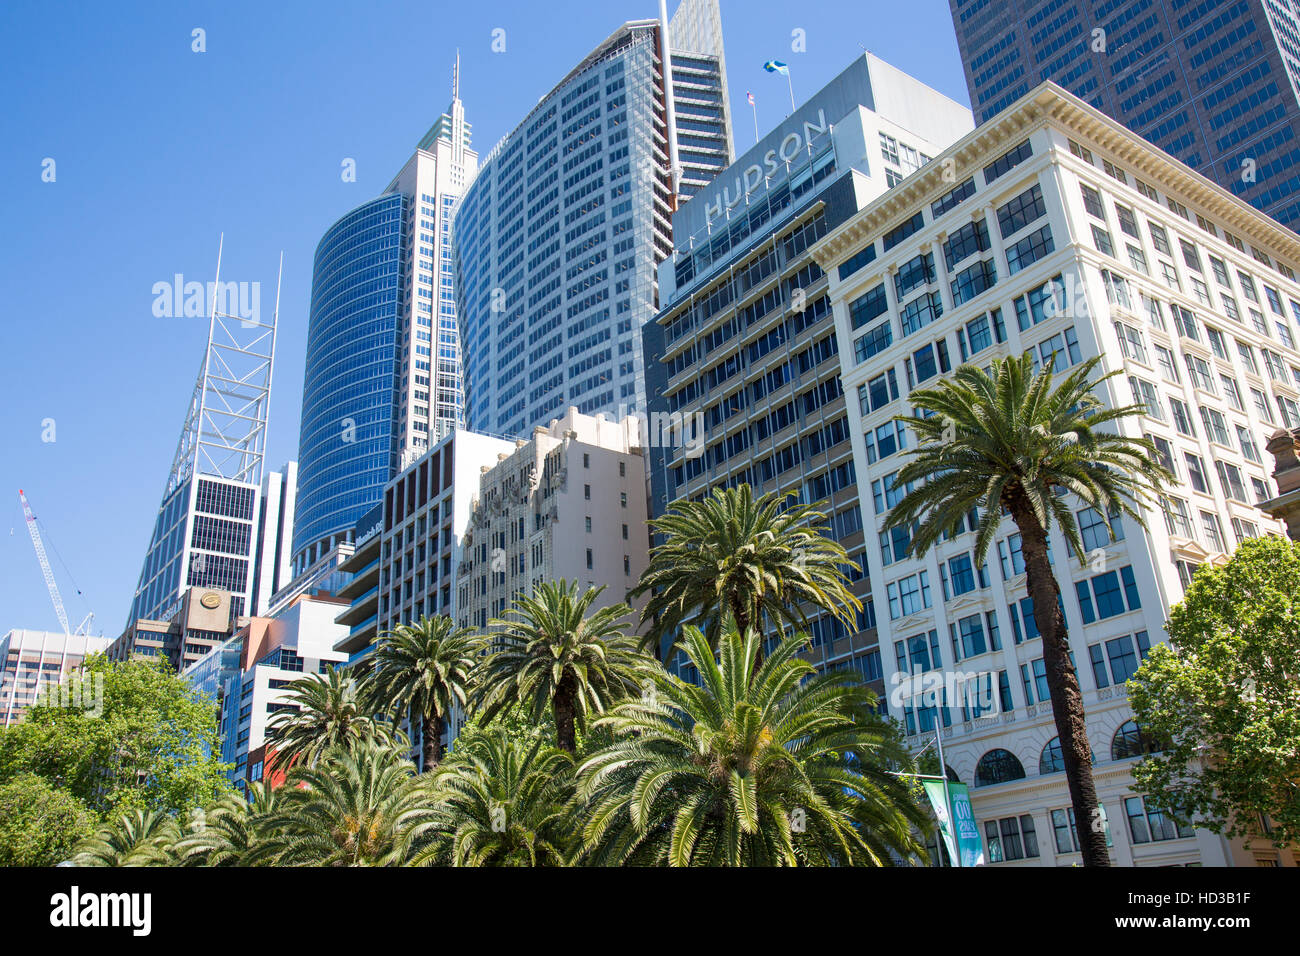 Office buildings including Aurora RBS place and Chifley tower on Macquarie Street in Sydney, New South Wales,Australia - Stock Image